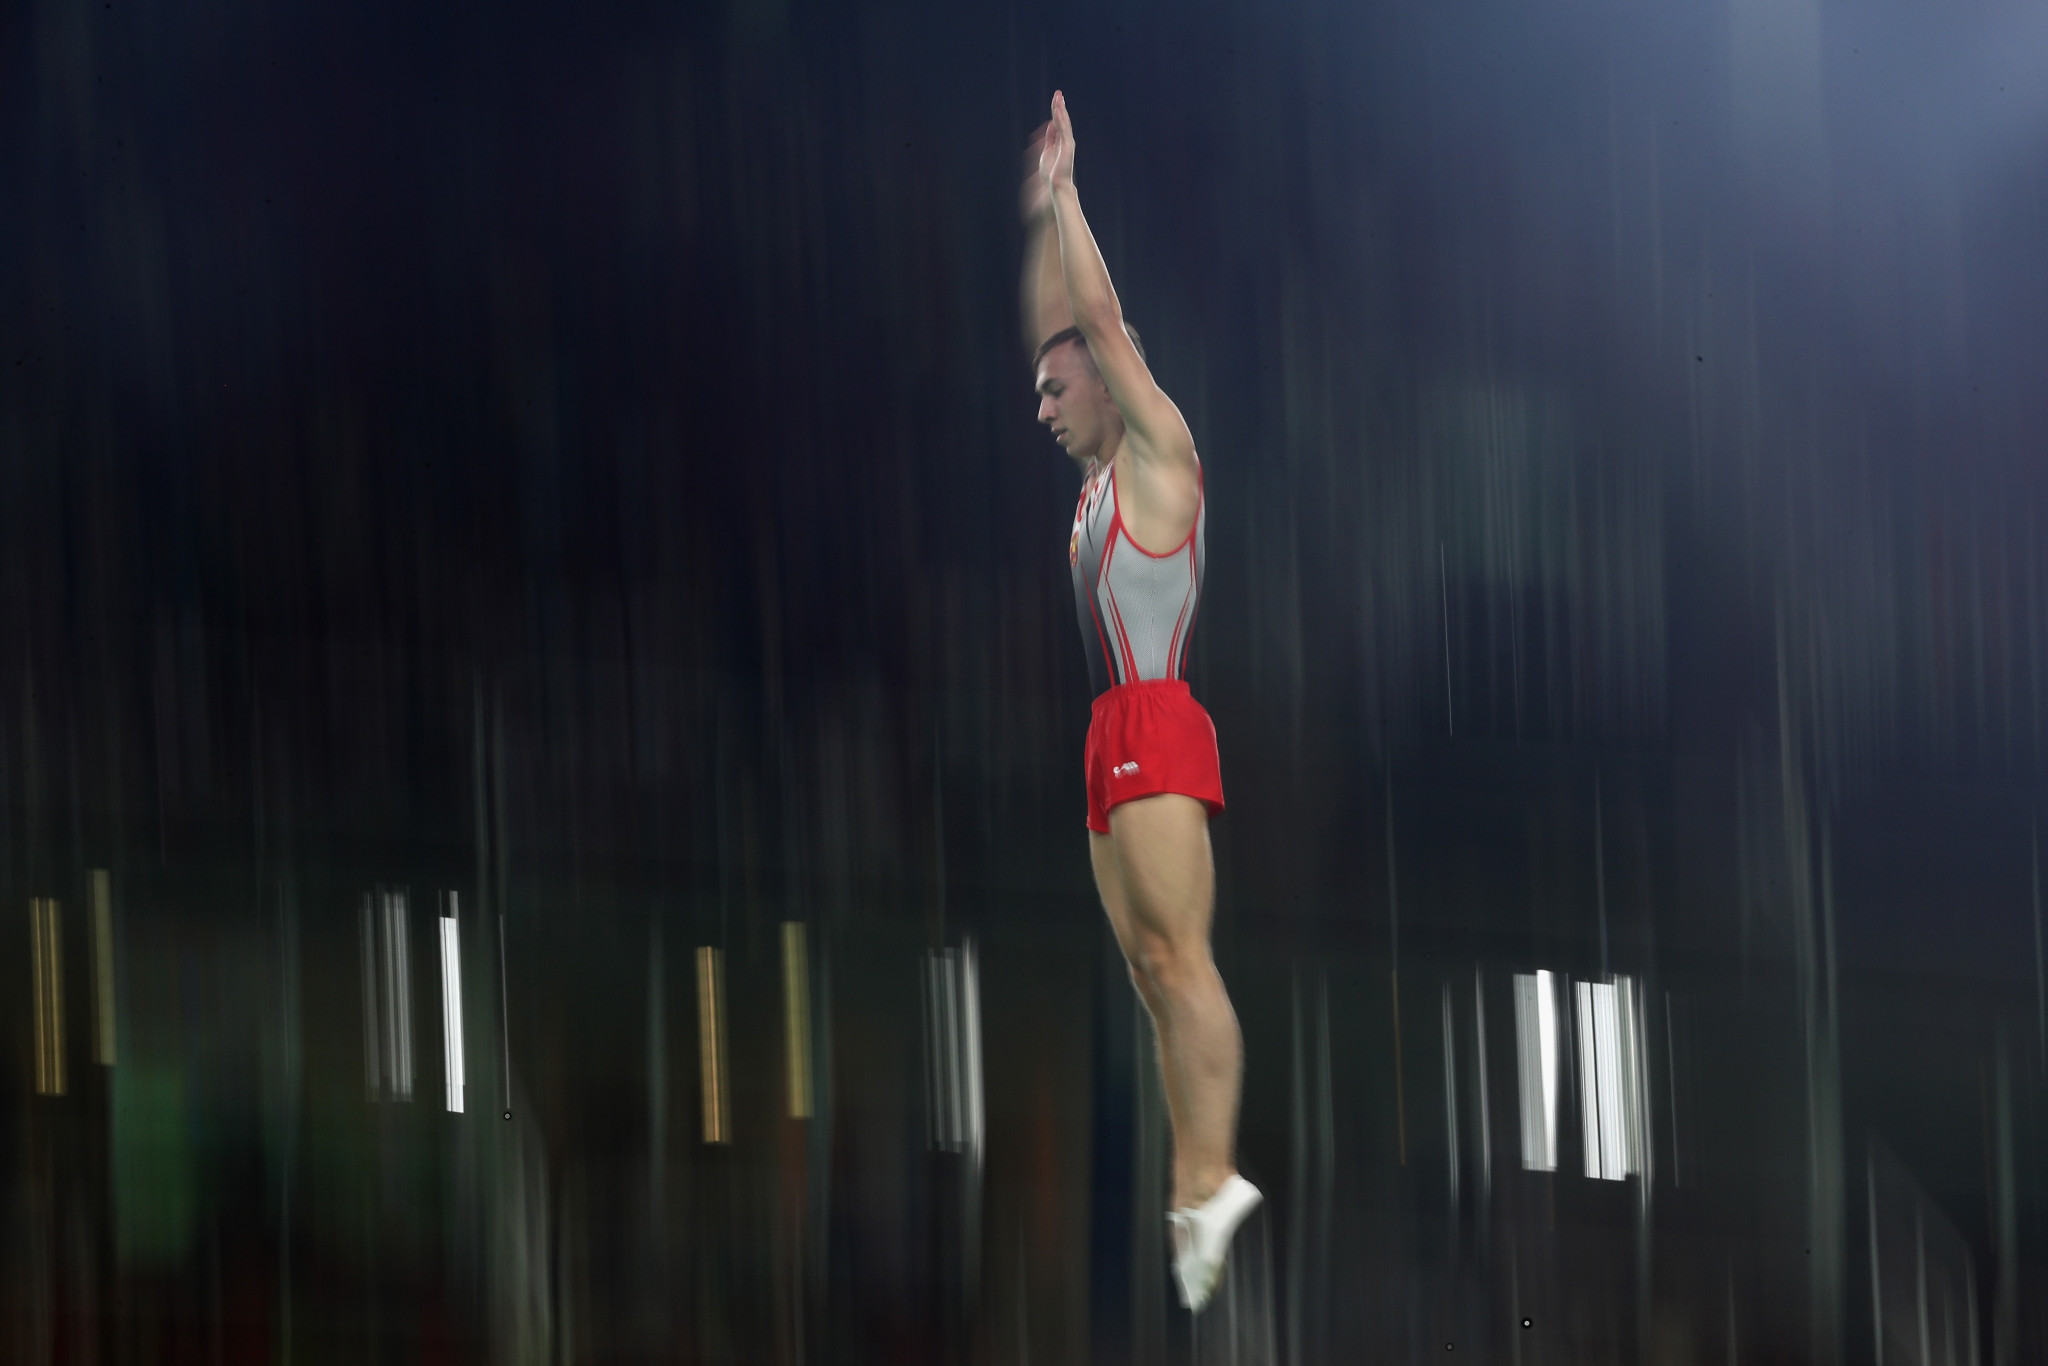 Olympic champion qualifies fifth in men's event at Trampoline Gymnastics World Championships